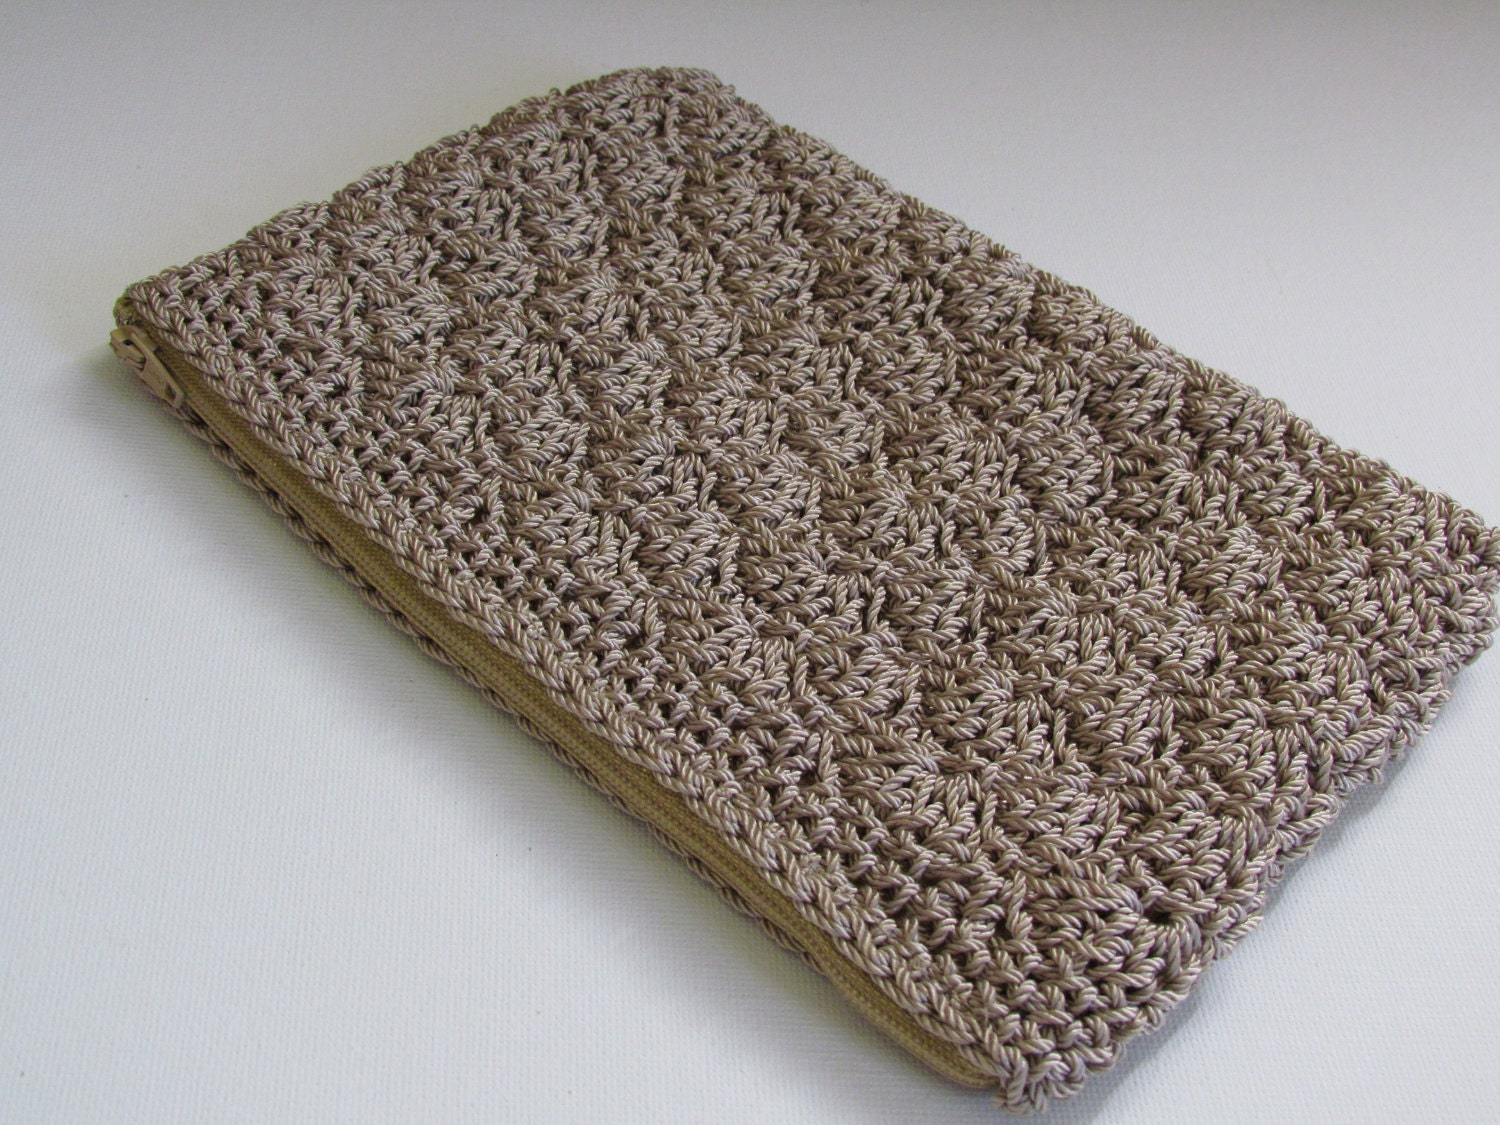 SALE Clutch Bag Purse Retro Crochet Tan Ecru Lined Clutch